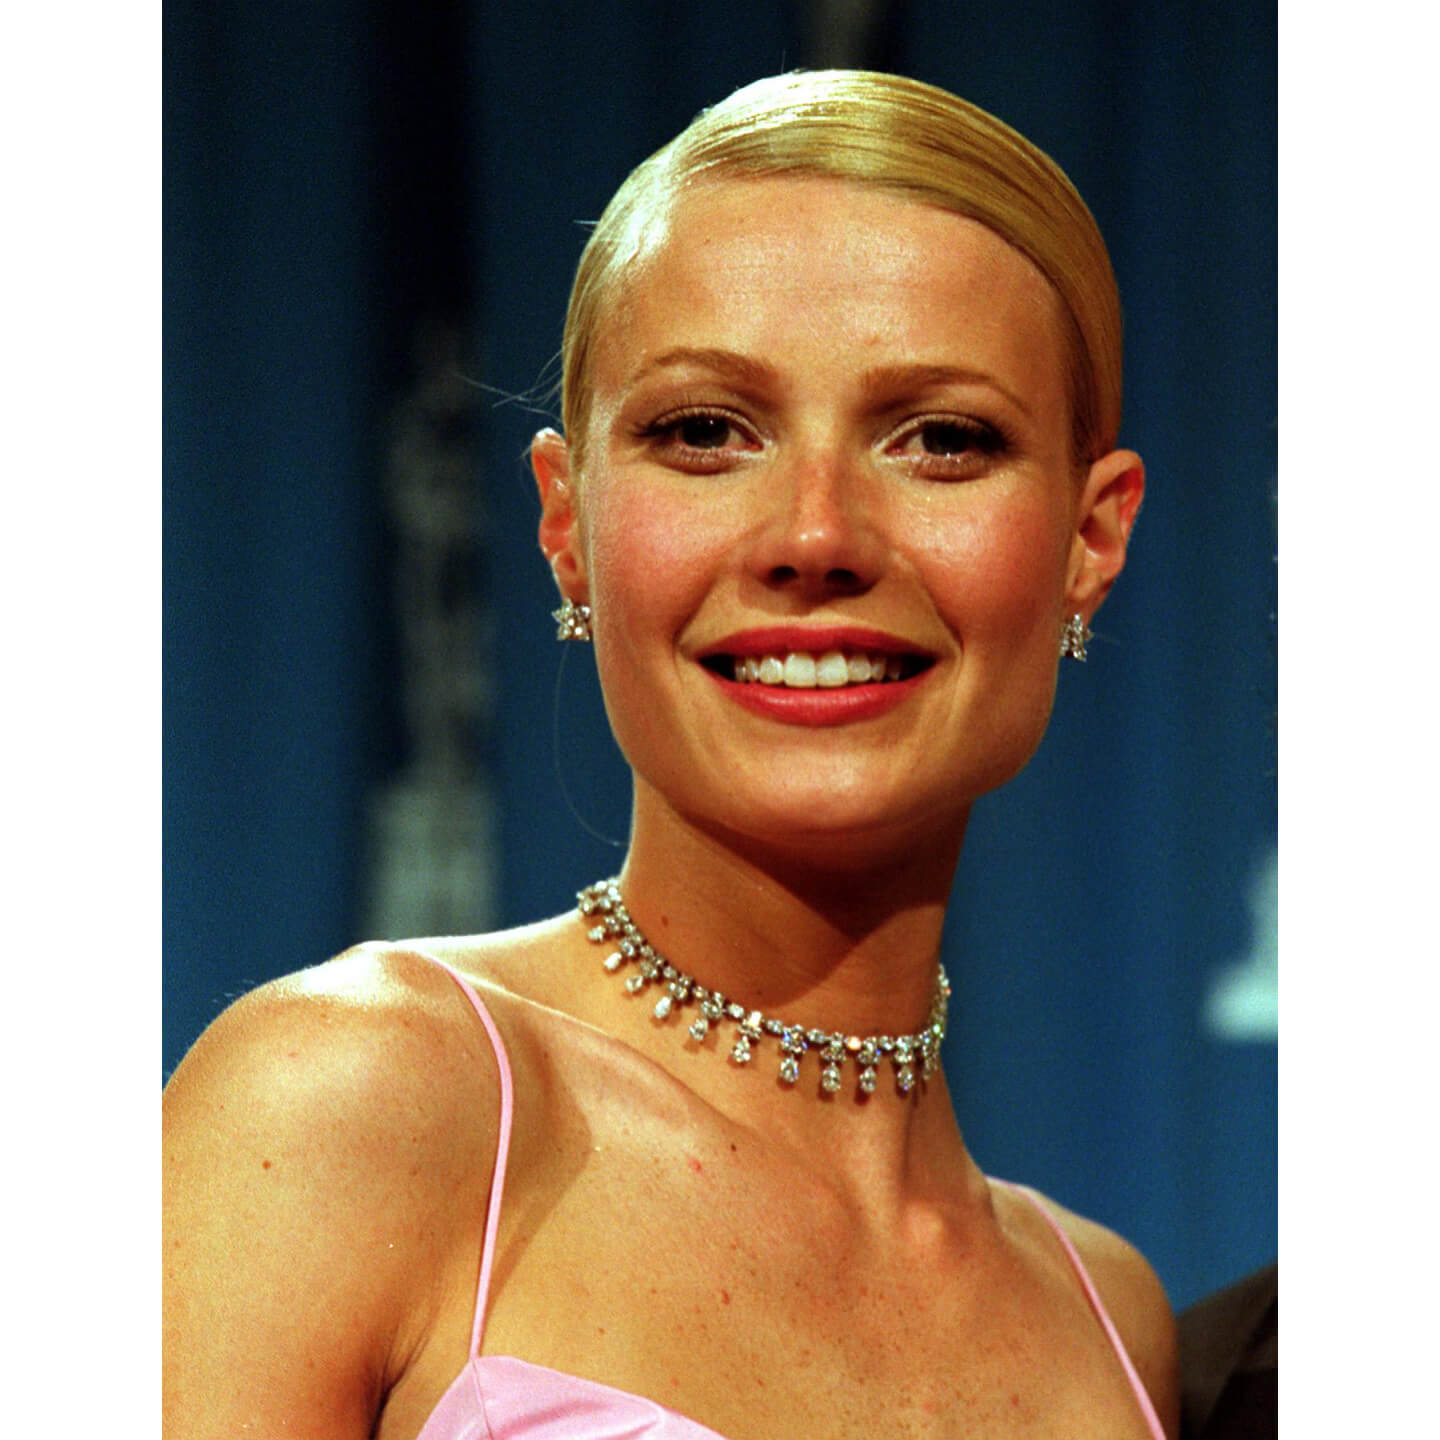 Gwyneth Paltrow wearing a diamond necklace from Harry Winston in a pink dress